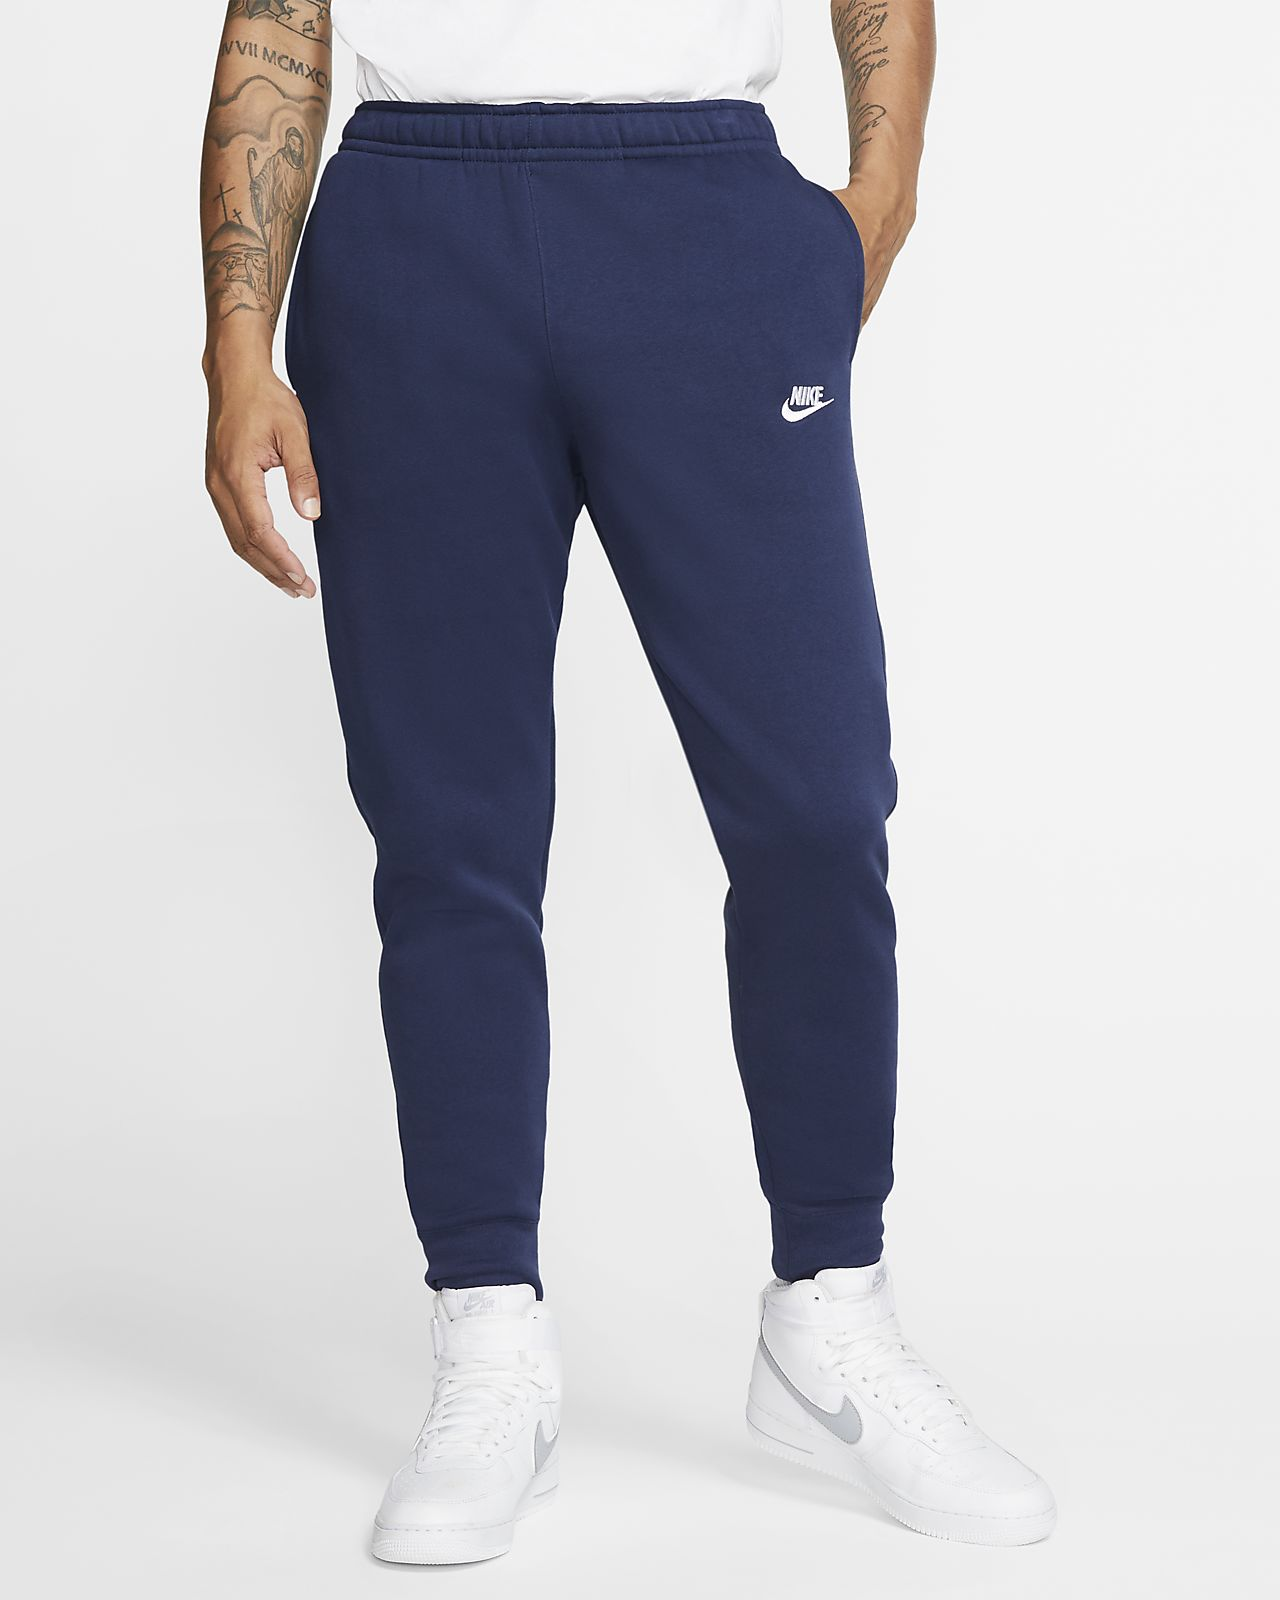 Nike Sportswear Club Fleece Joggers; holiday gift guide for him